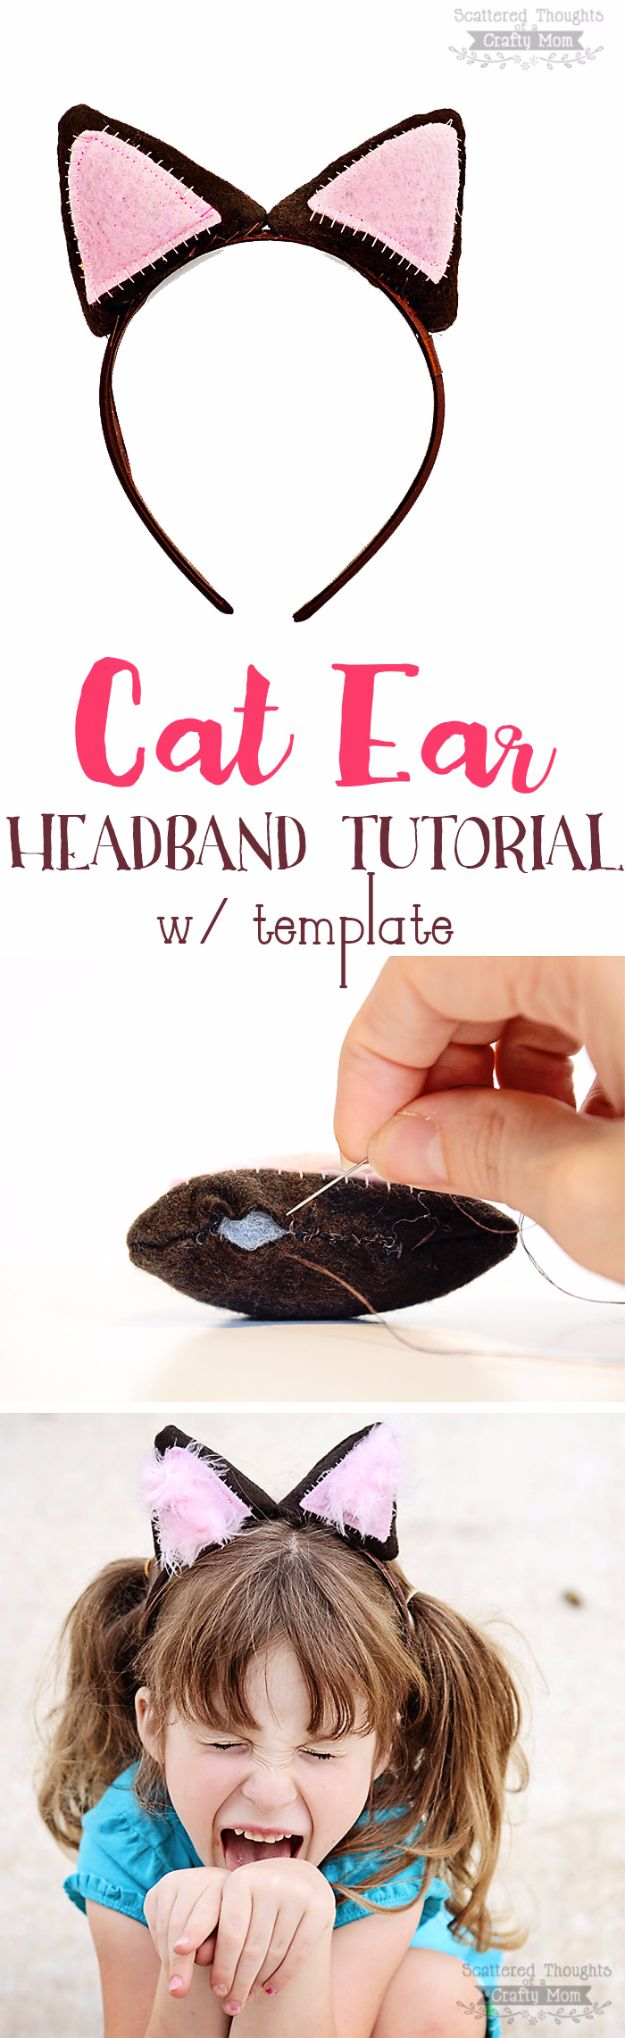 DIY Ideas With Cats - DIY Cat Ear Headband - Cute and Easy DIY Projects for Cat Lovers - Wall and Home Decor Projects, Things To Make and Sell on Etsy - Quick Gifts to Make for Friends Who Have Kittens and Kitties - Homemade No Sew Projects- Fun Jewelry, Cool Clothes, Pillows and Kitty Accessories http://diyjoy.com/diy-ideas-cats